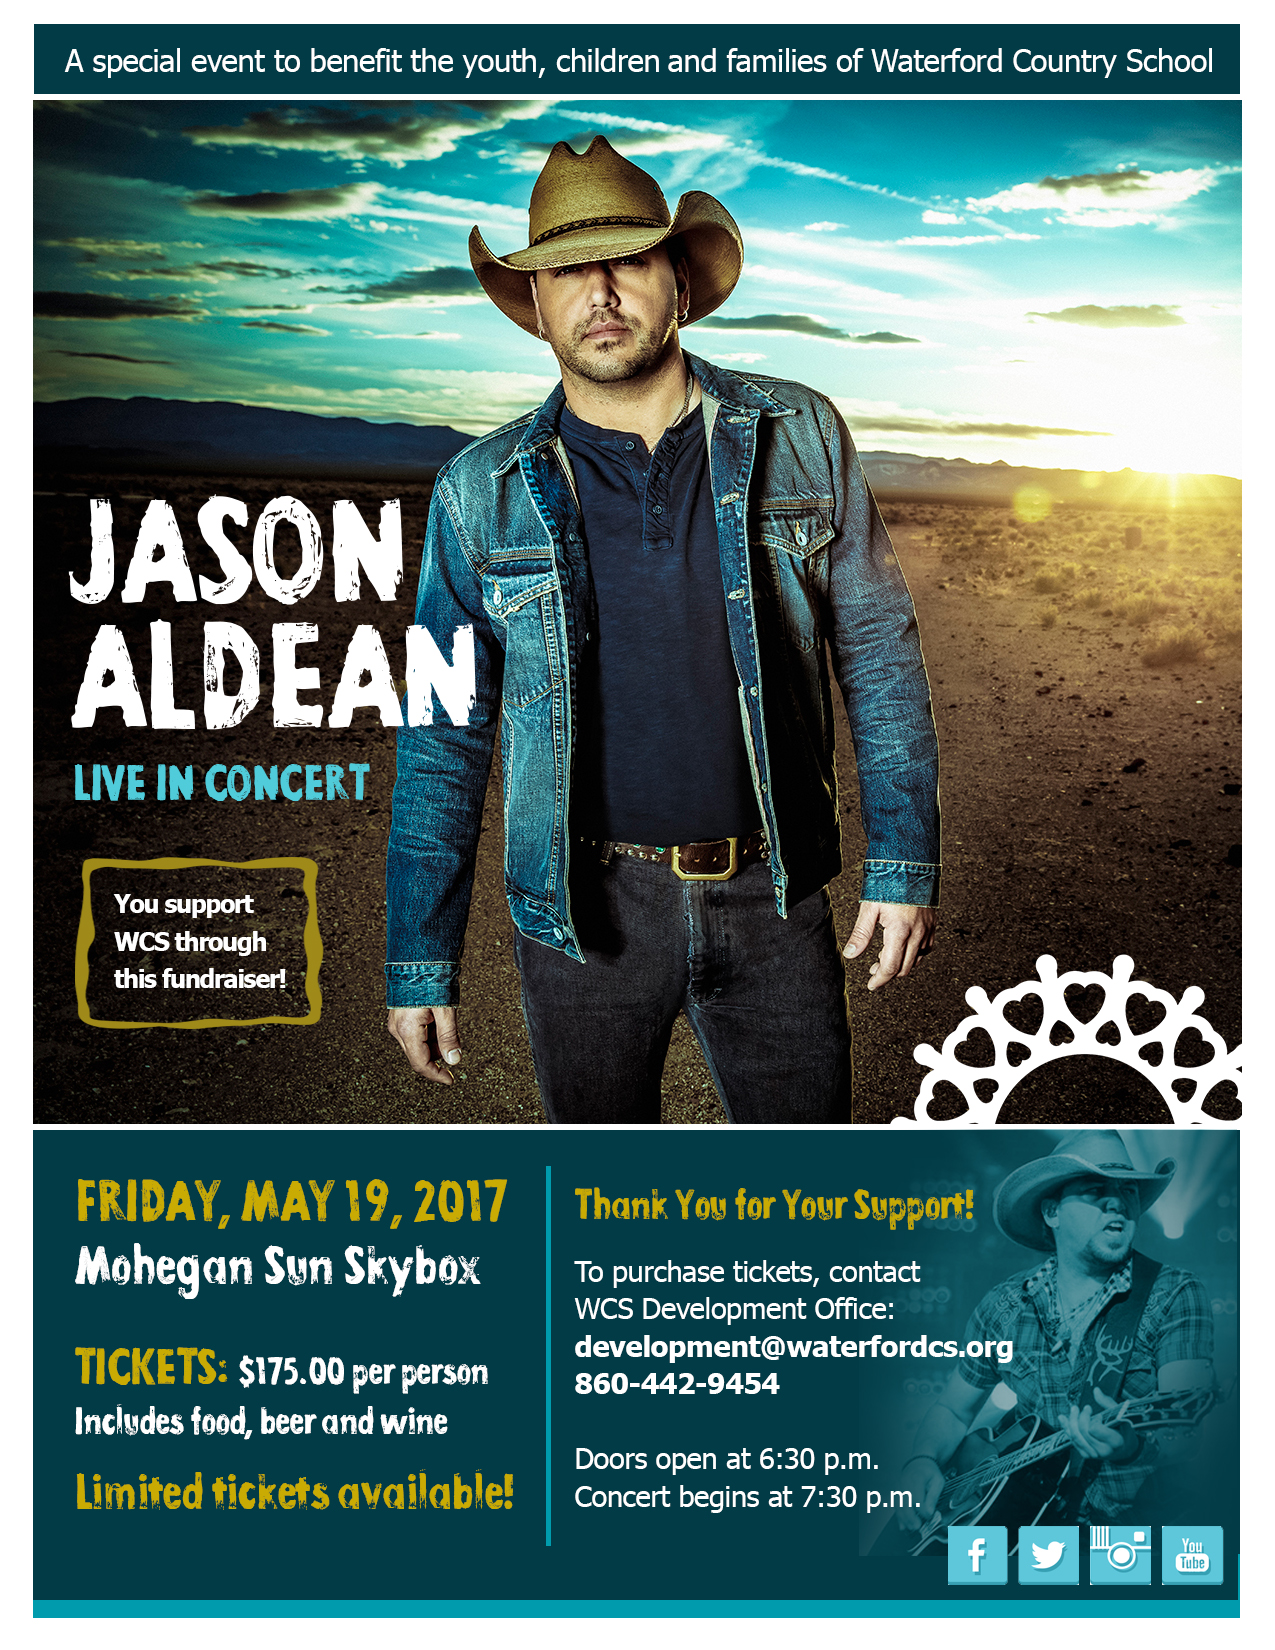 Jason Aldean fundraiser to benefit Waterford Country School skybox tickets for may 19 show